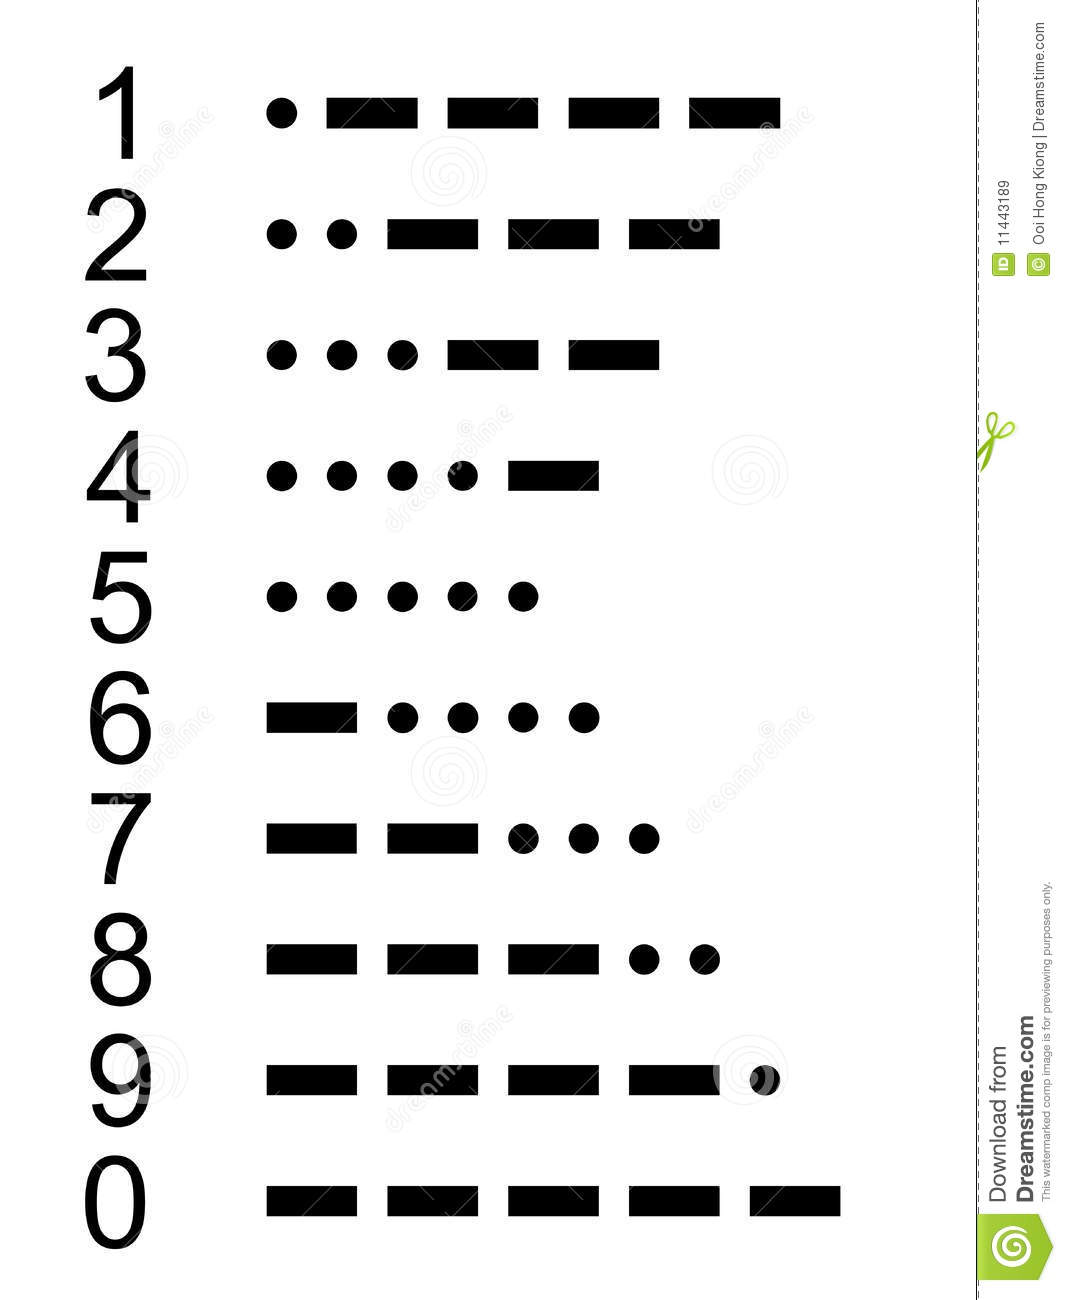 http://www.dreamstime.com/royalty-free-stock-images-morse-code-number-0-9-image11443189